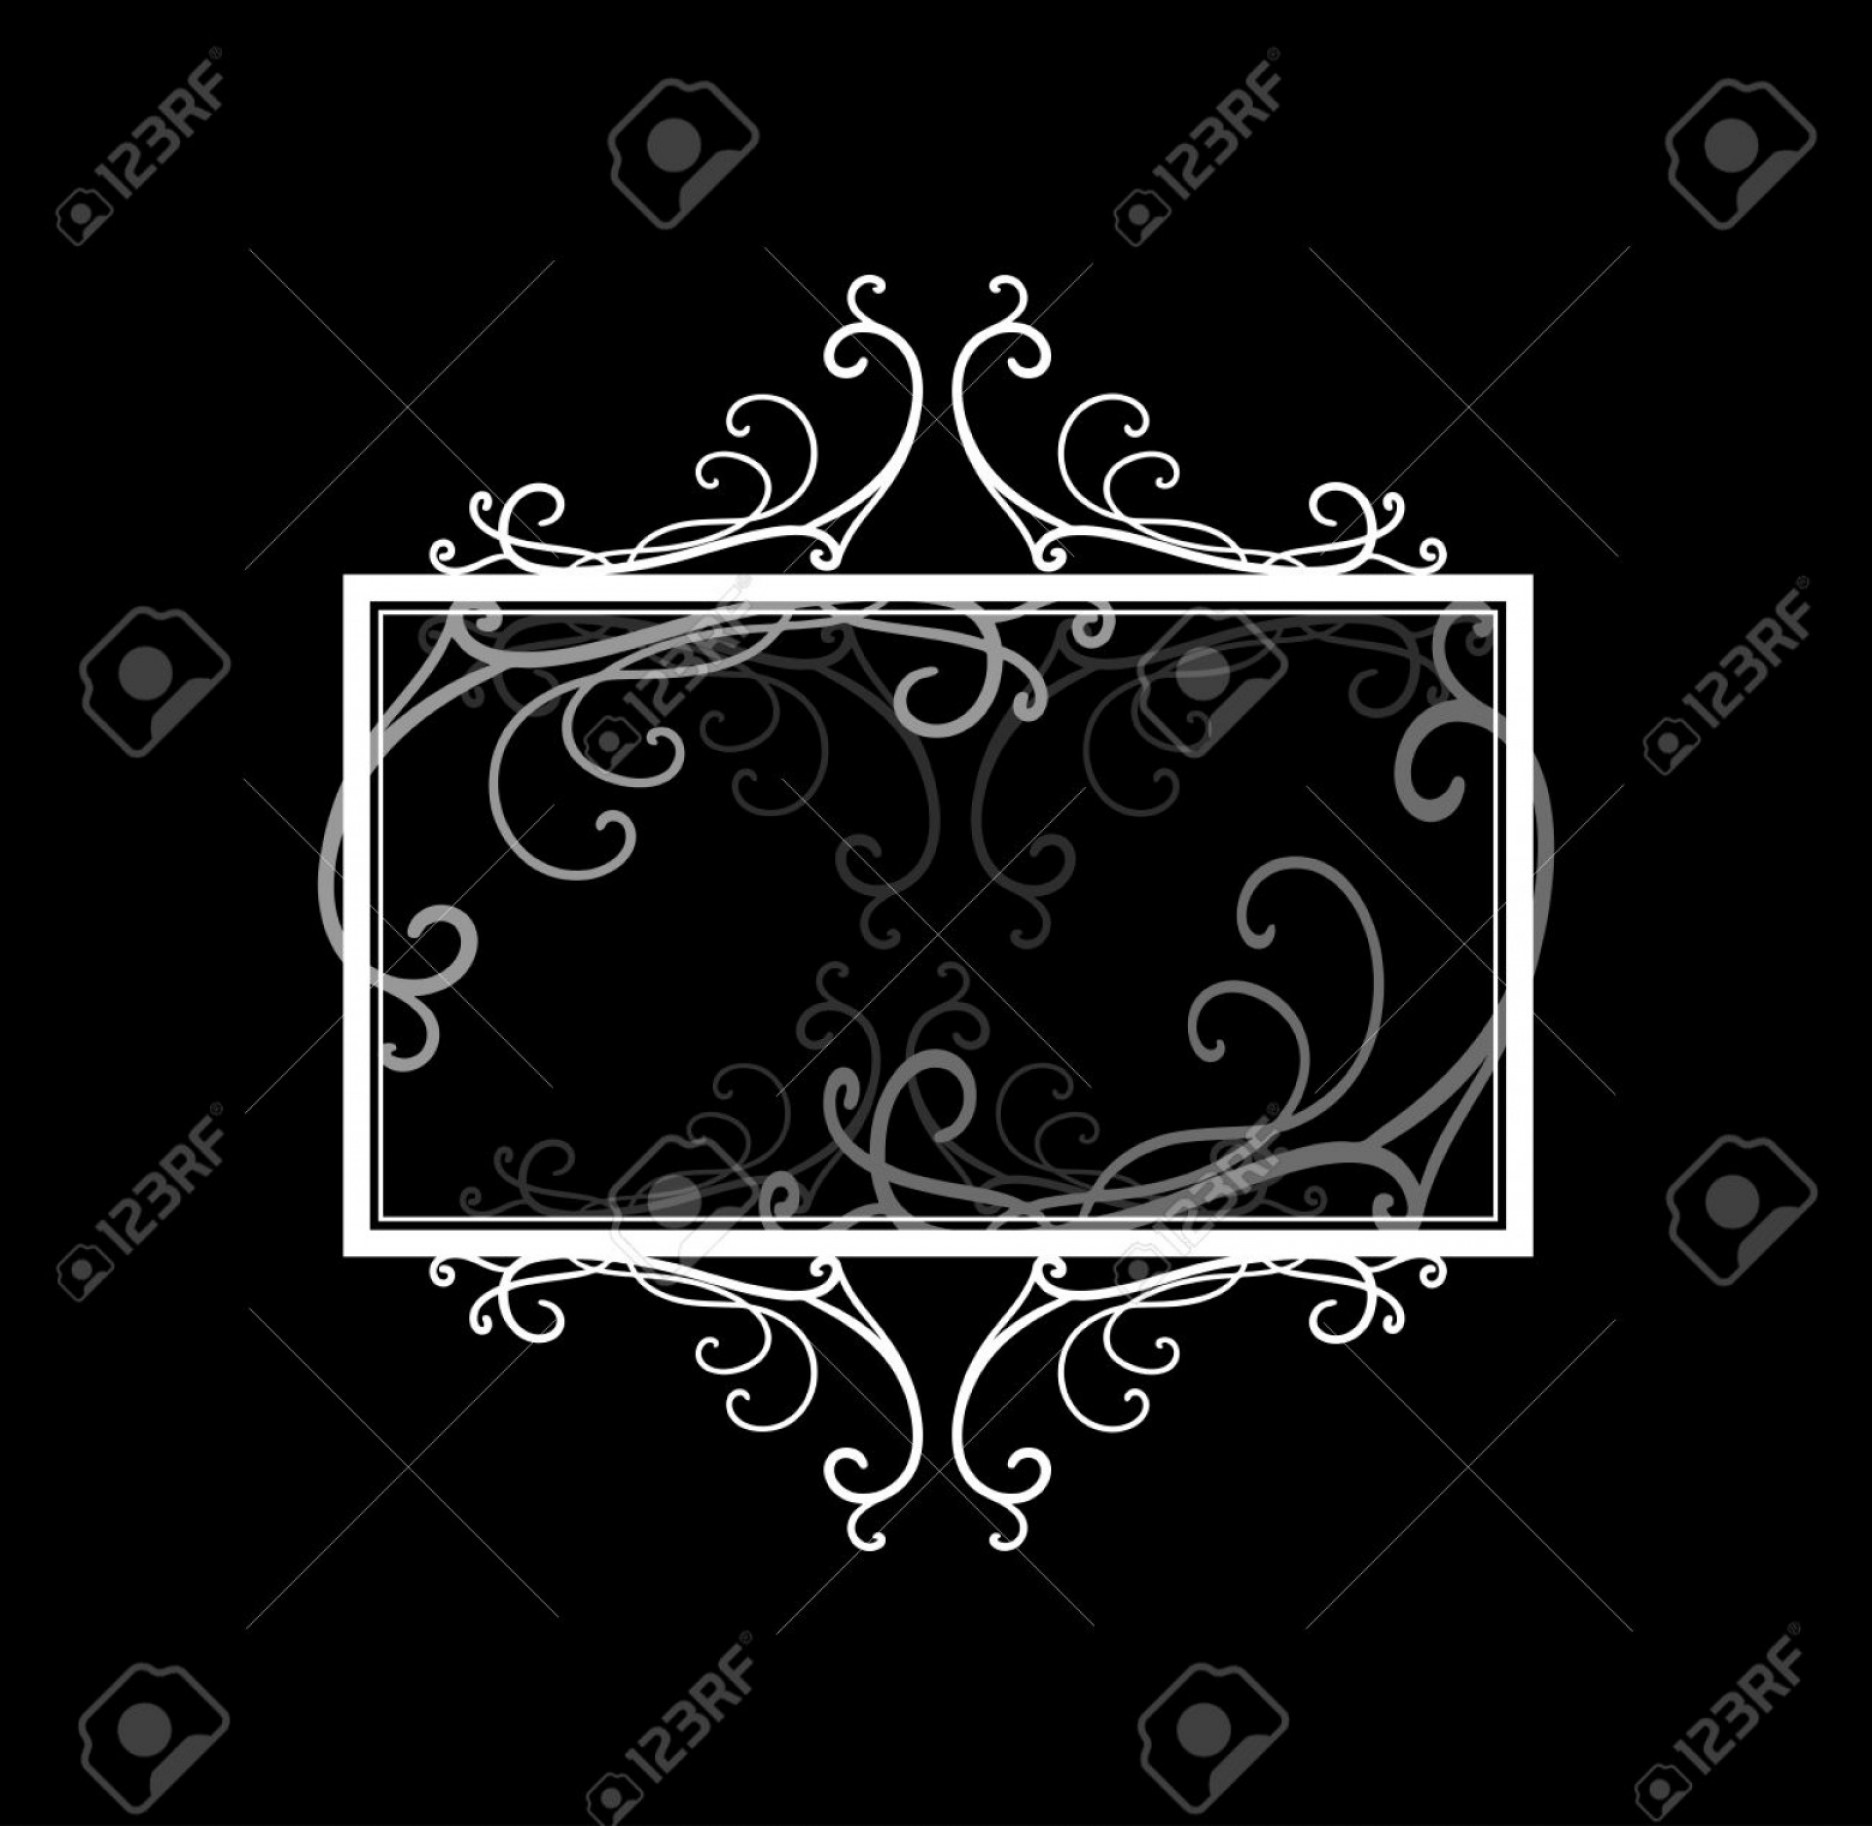 Photostock Vector Blank Black Text Box Or Sign Vector With White